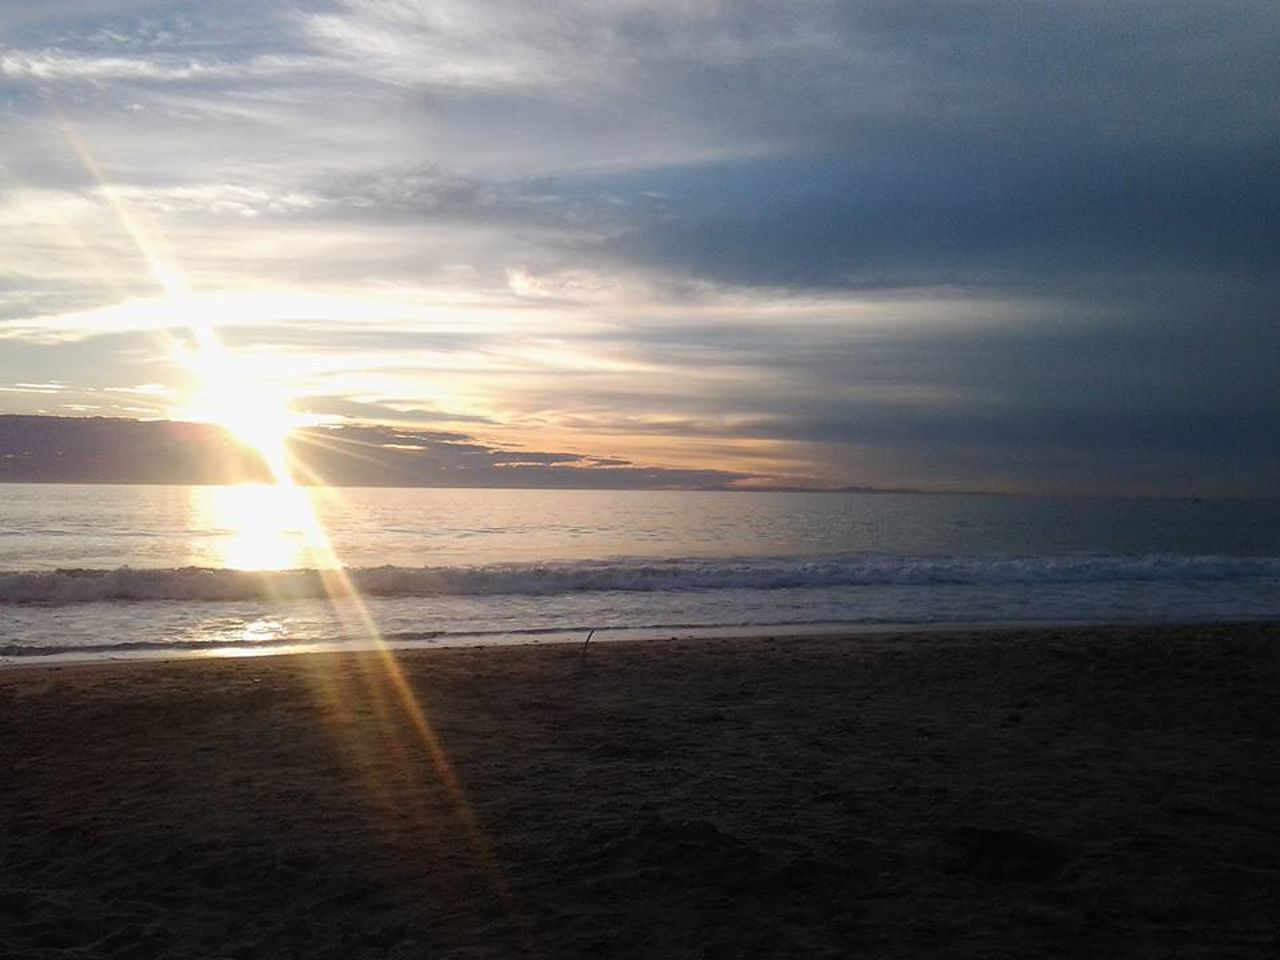 sea, sunset, scenics, beauty in nature, horizon over water, beach, nature, water, sun, tranquil scene, tranquility, sunlight, sky, sunbeam, lens flare, idyllic, cloud - sky, reflection, outdoors, no people, sand, wave, day